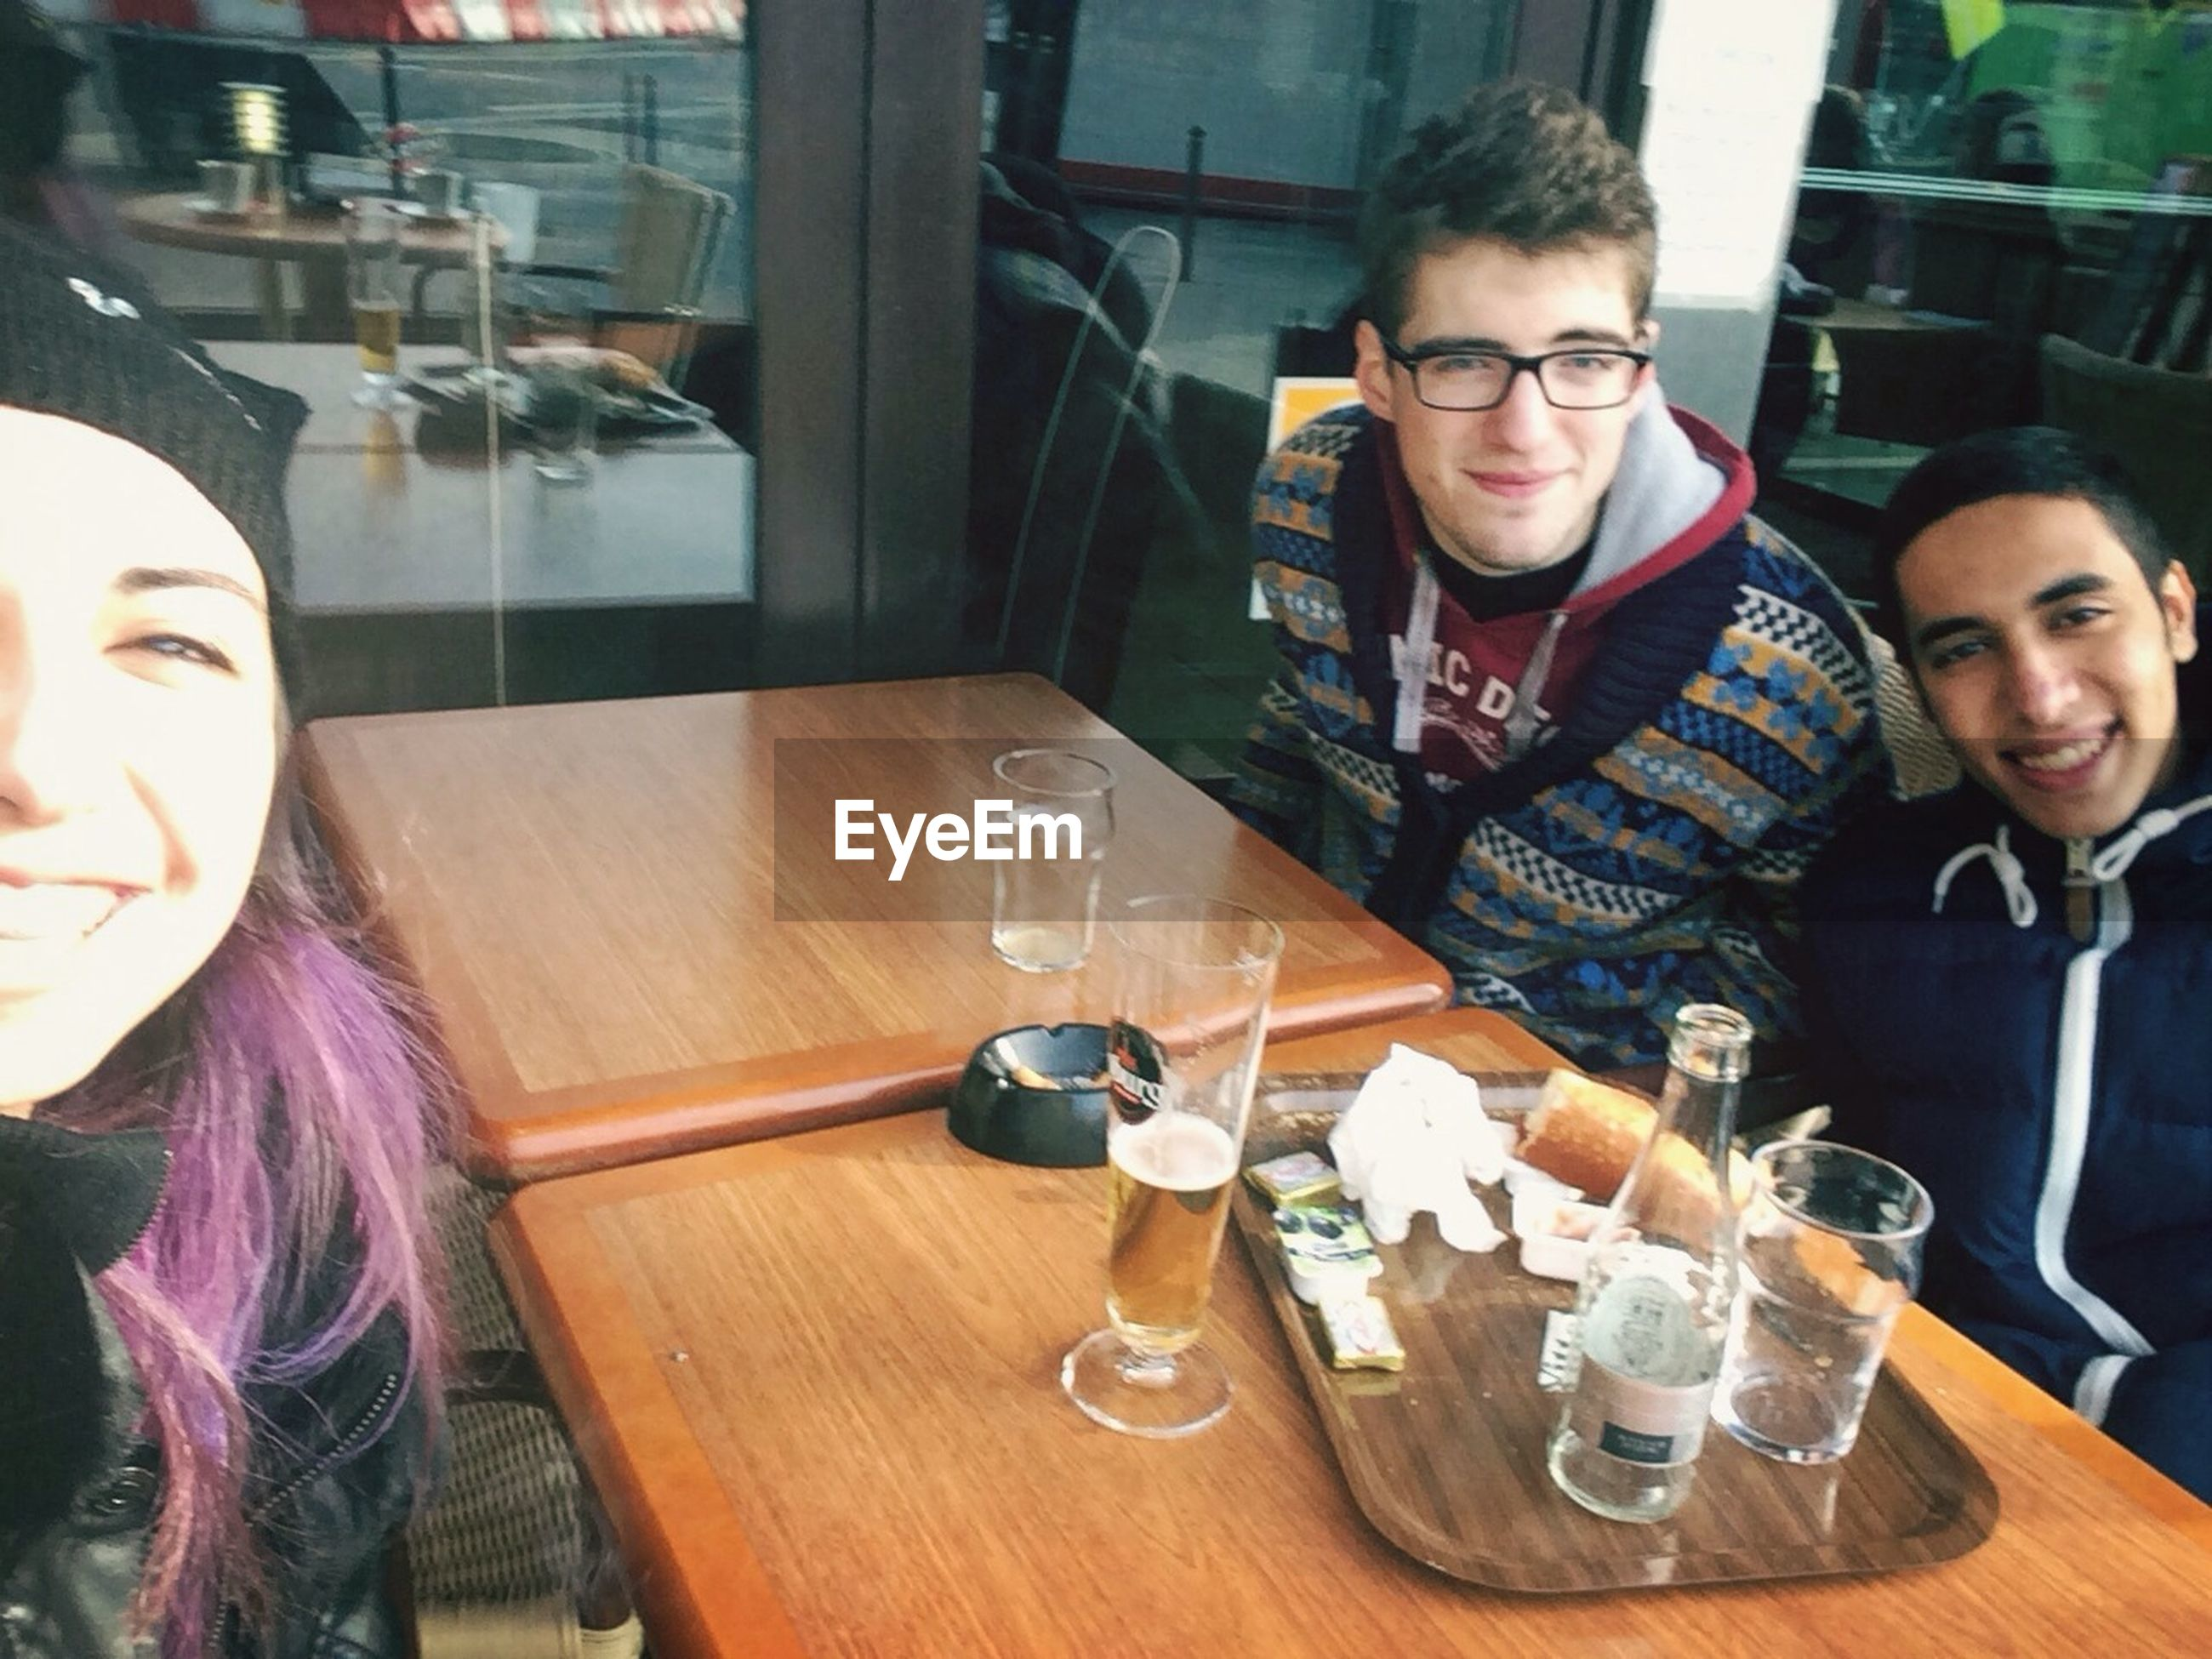 indoors, person, lifestyles, young adult, leisure activity, table, casual clothing, drink, young women, restaurant, food and drink, sitting, smiling, front view, portrait, looking at camera, glass - material